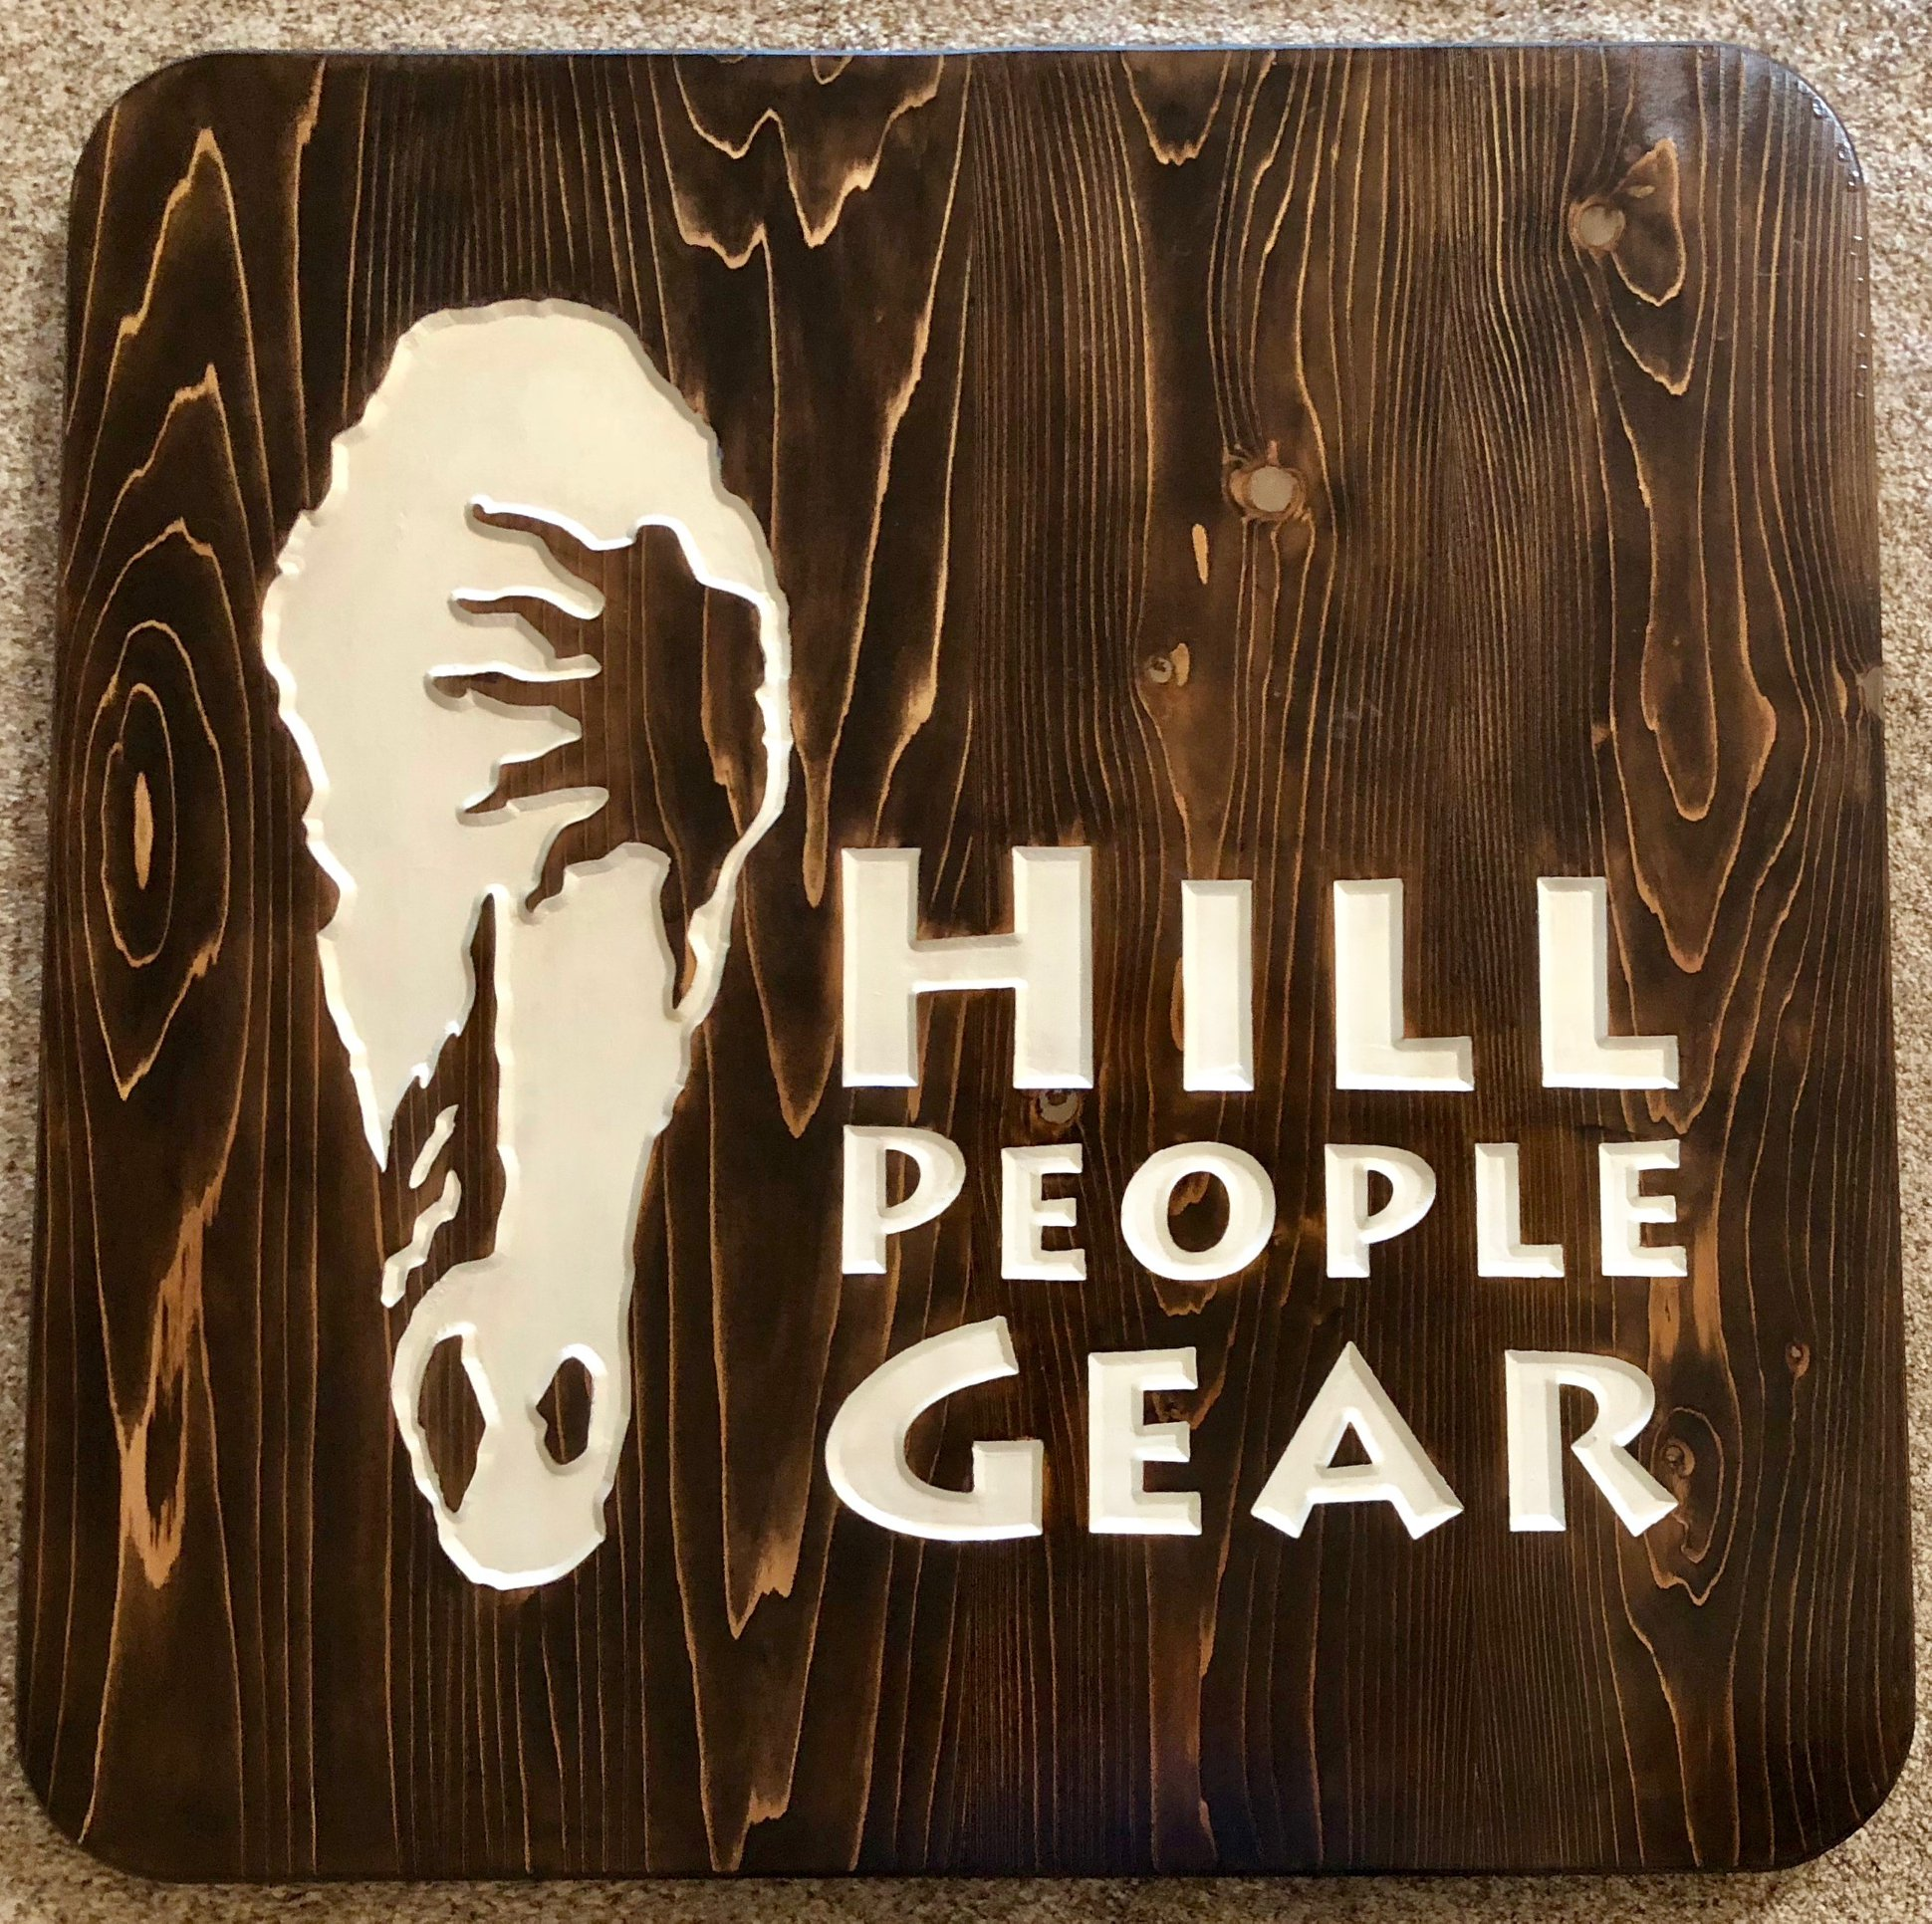 612  commercial wood sign for Hill People Gear with horse Head graphic